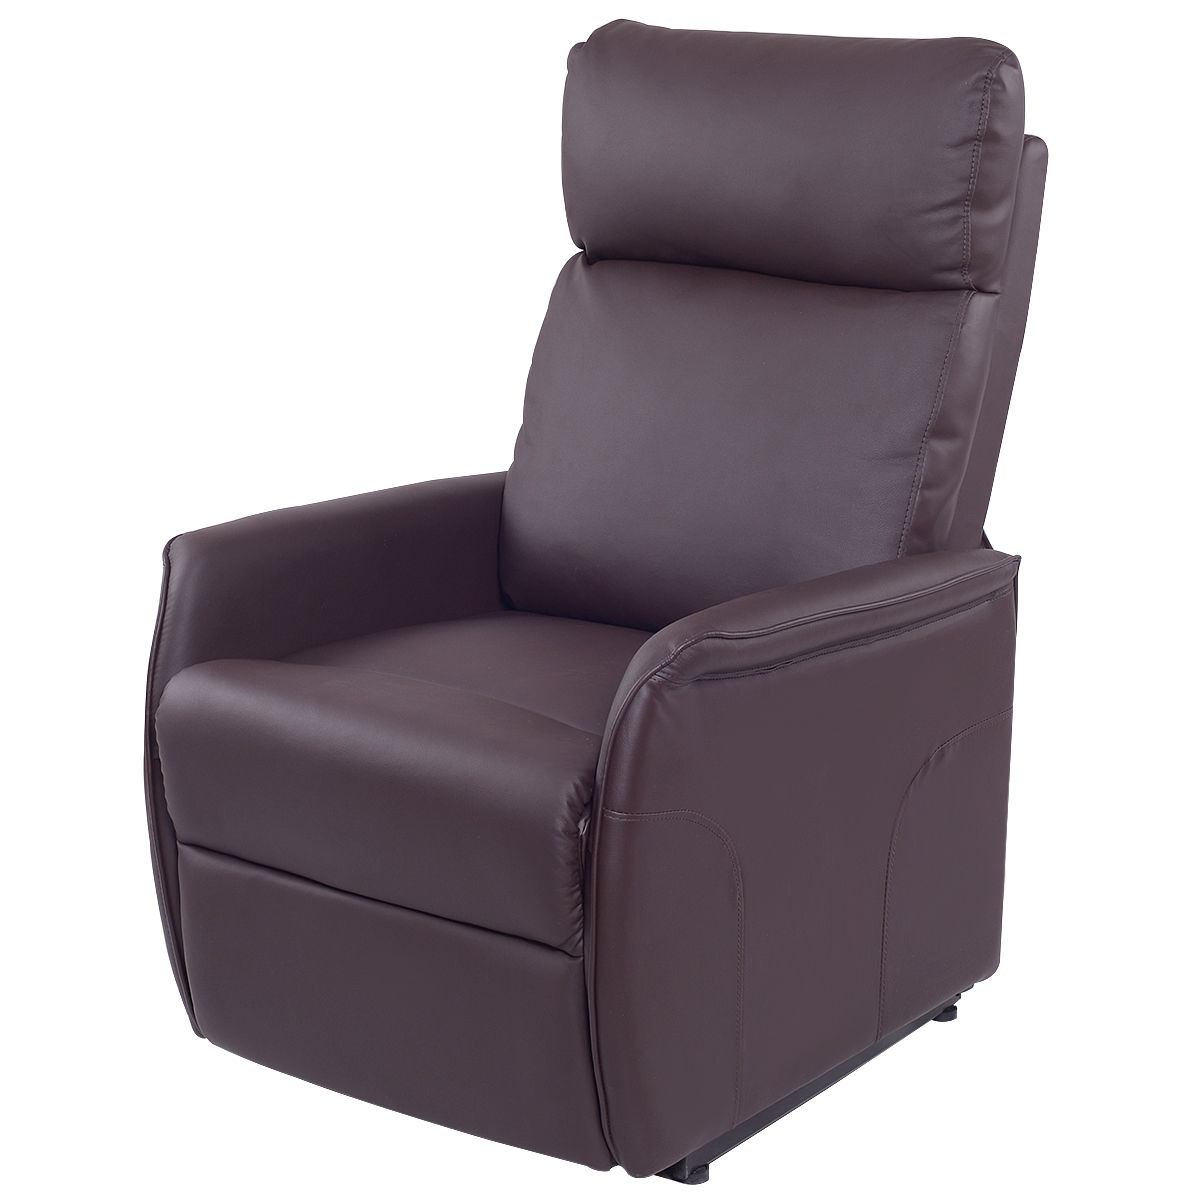 home meridian lift chair repair loose covers for weddings recliners walmart com product image costway pu electric power recliner reclining sofa lounge w remote controller